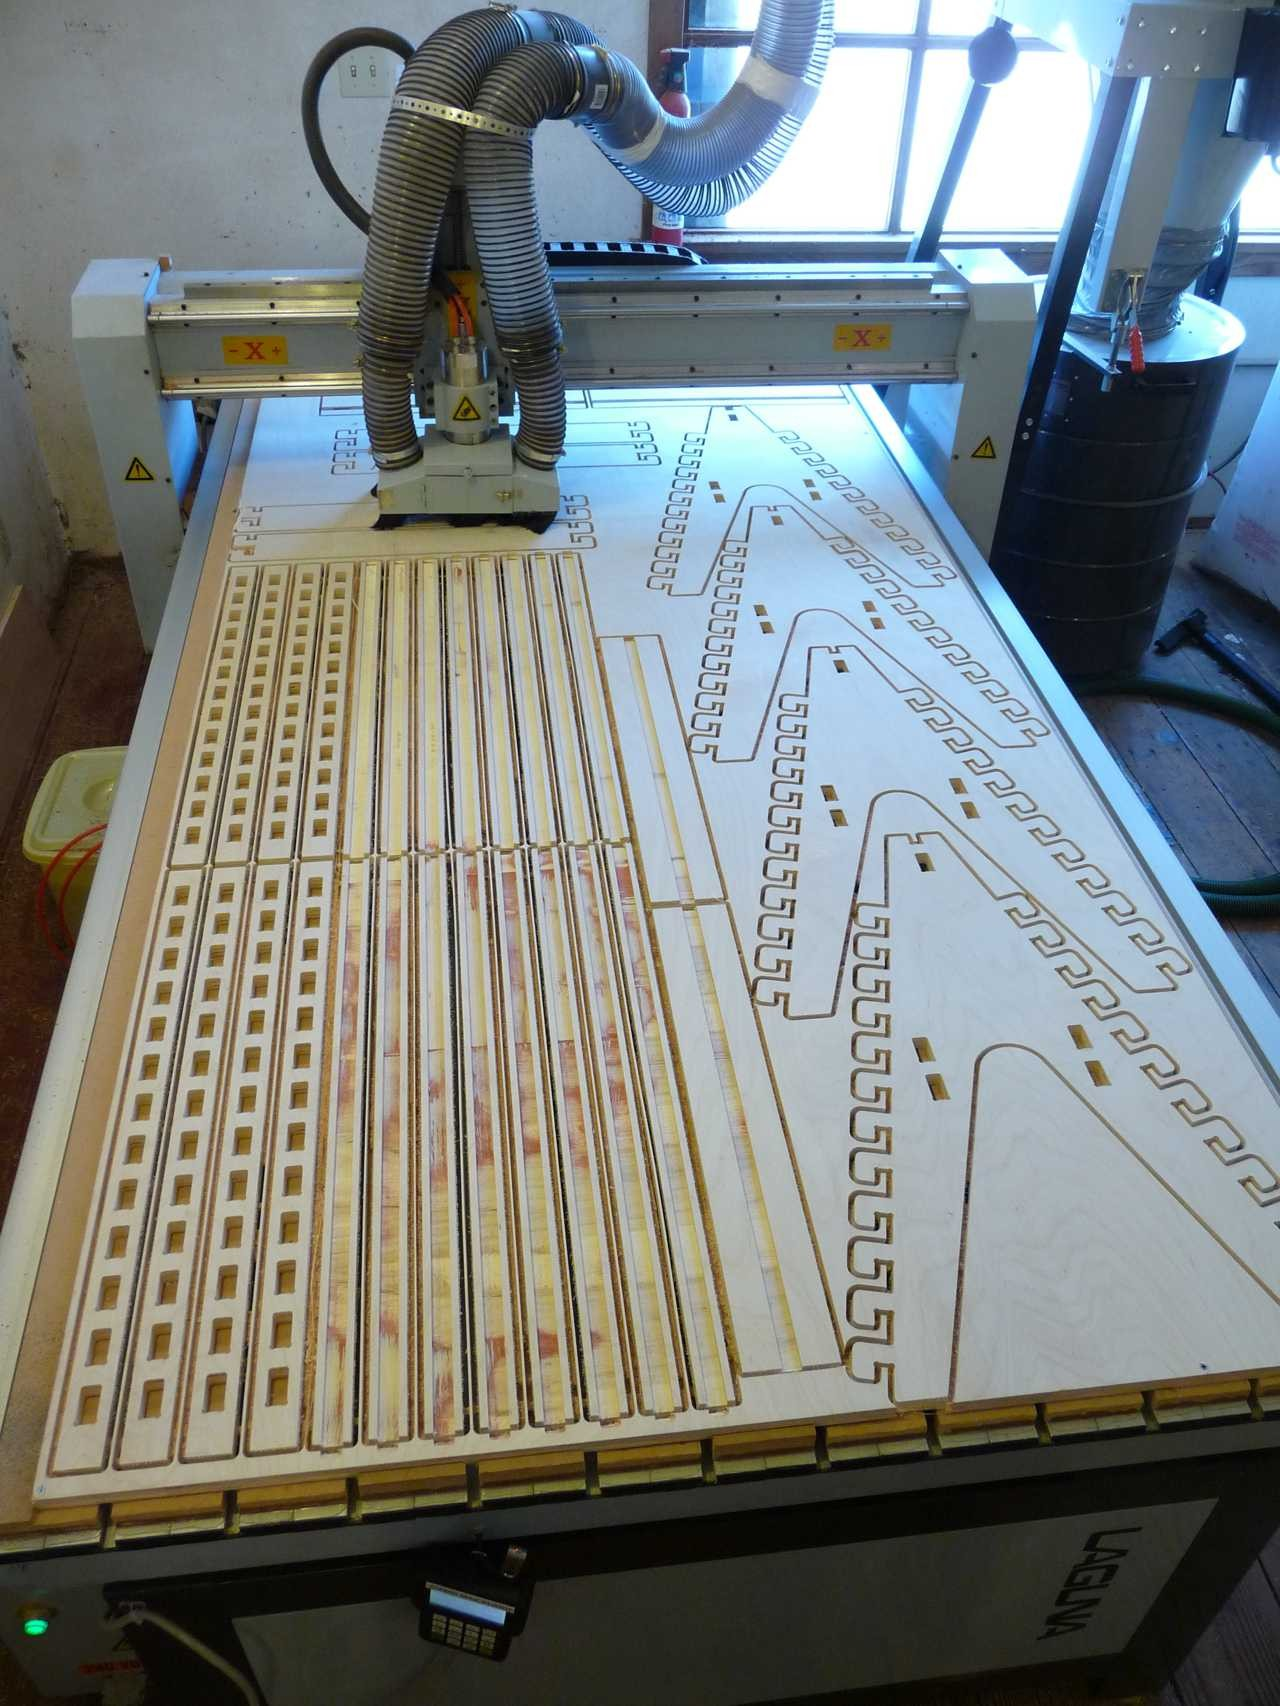 CNC Routed Wooden Components